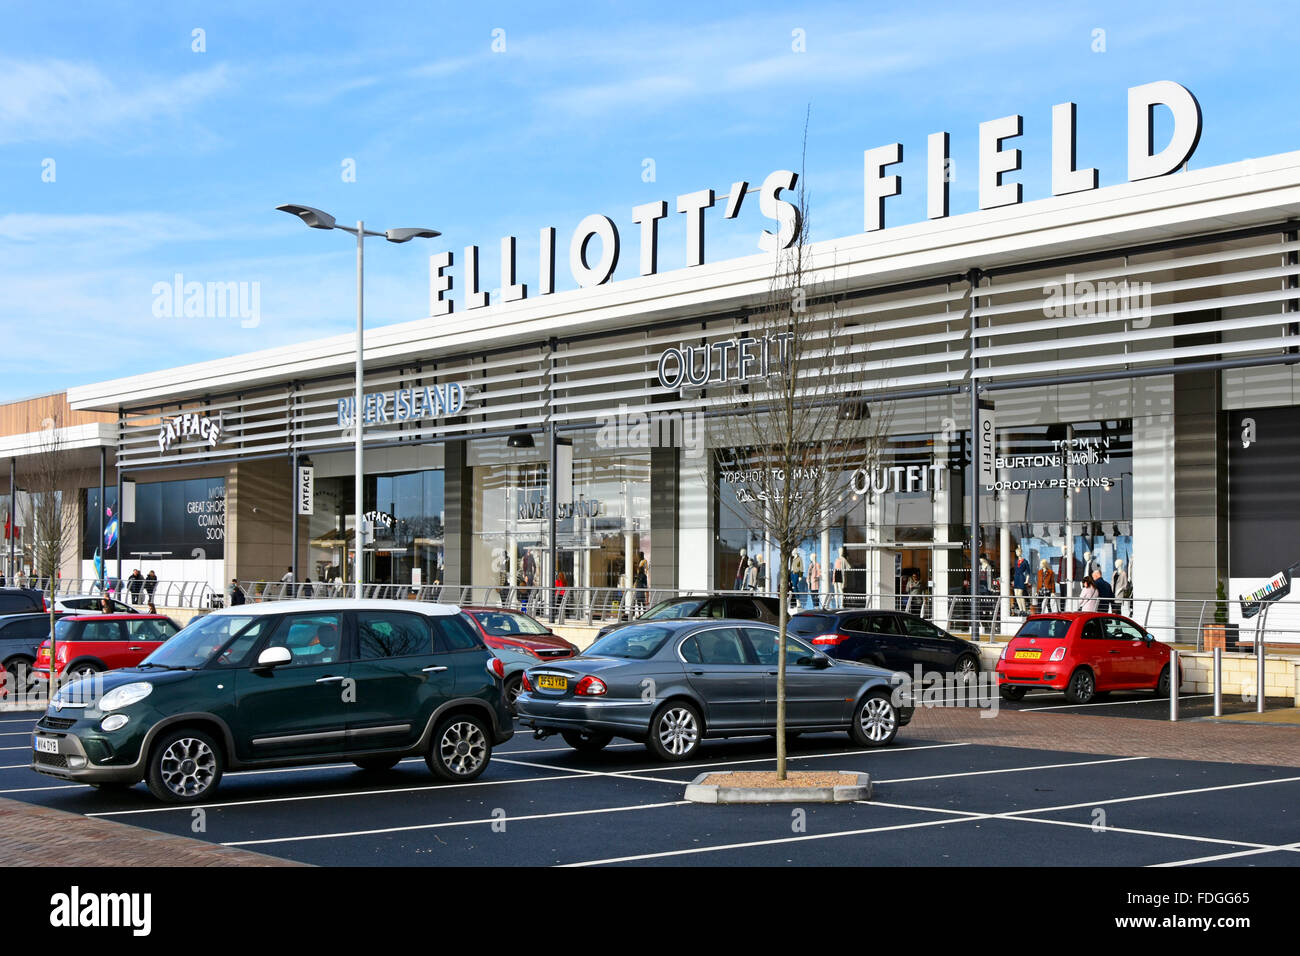 Retail Park shopping centre Elliotts Field with free car parking space in Rugby town Warwickshire England UK - Stock Image